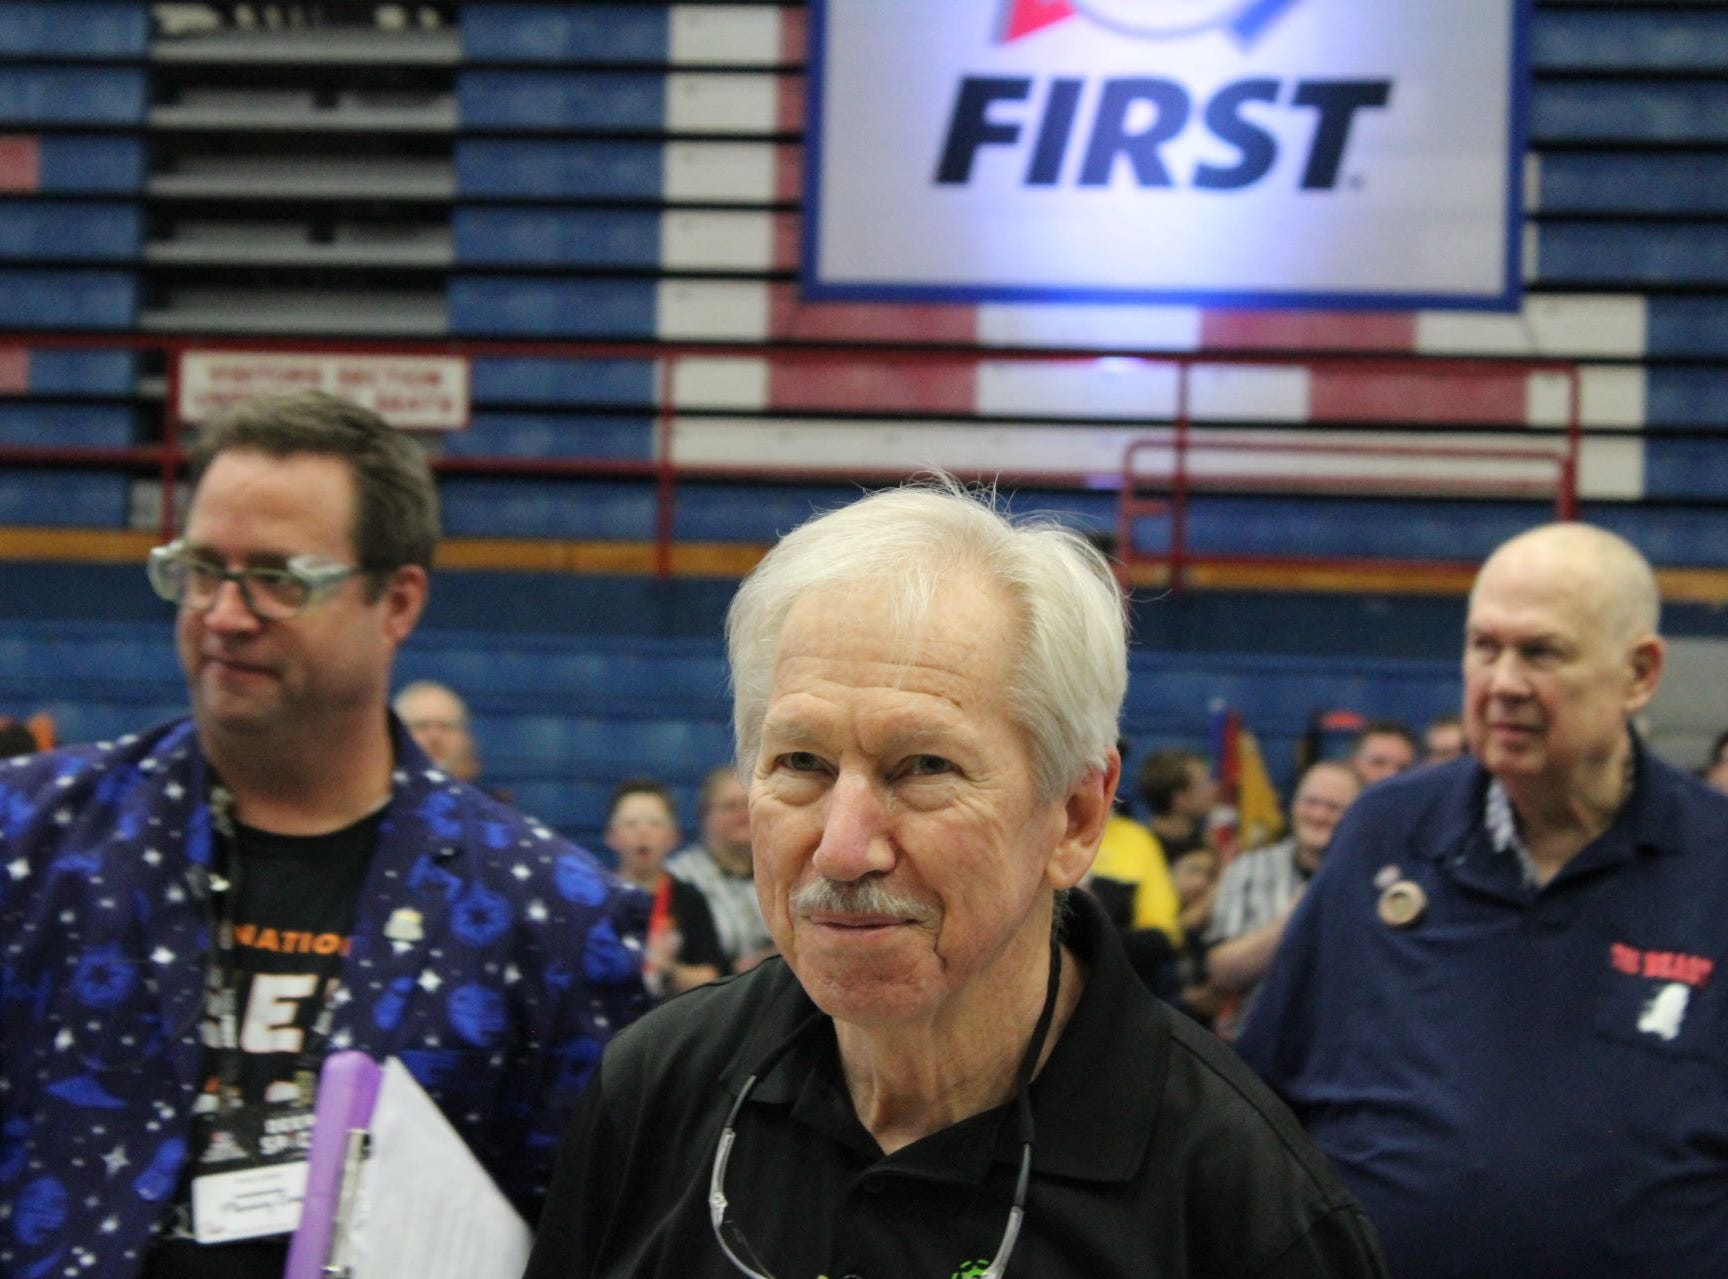 Mike Koch, who has been involved with PhyXTGears for 14 years, received the coveted District Championship Woodie Flowers award at state this year. Koch is now a finalist for the World Championship Woodie Flowers Award in Detroit.